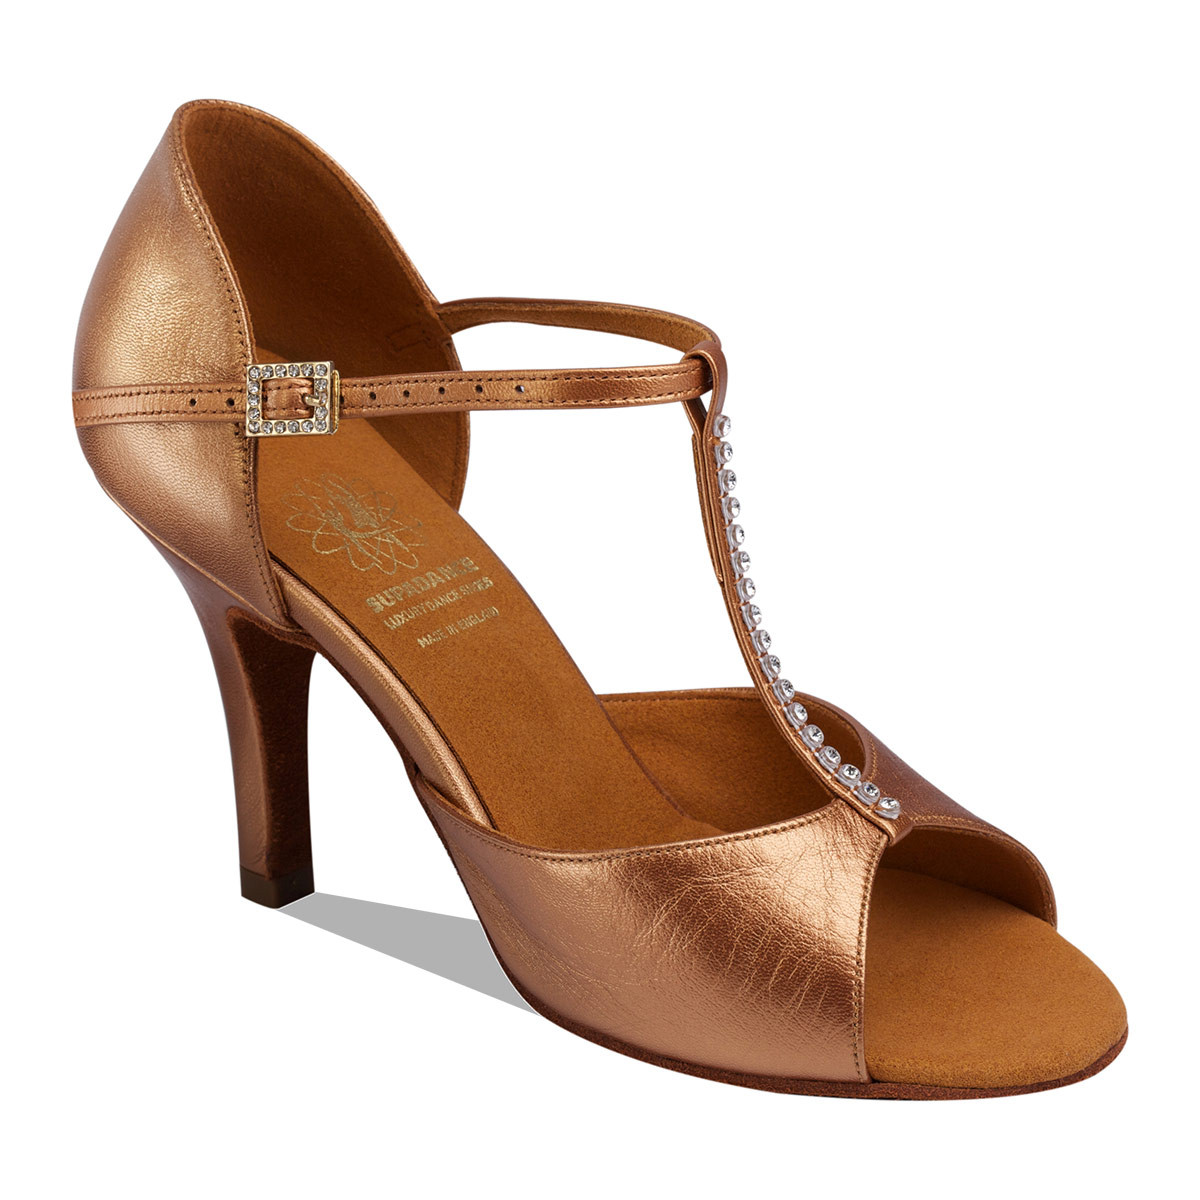 1010 Latin Dance Sandal